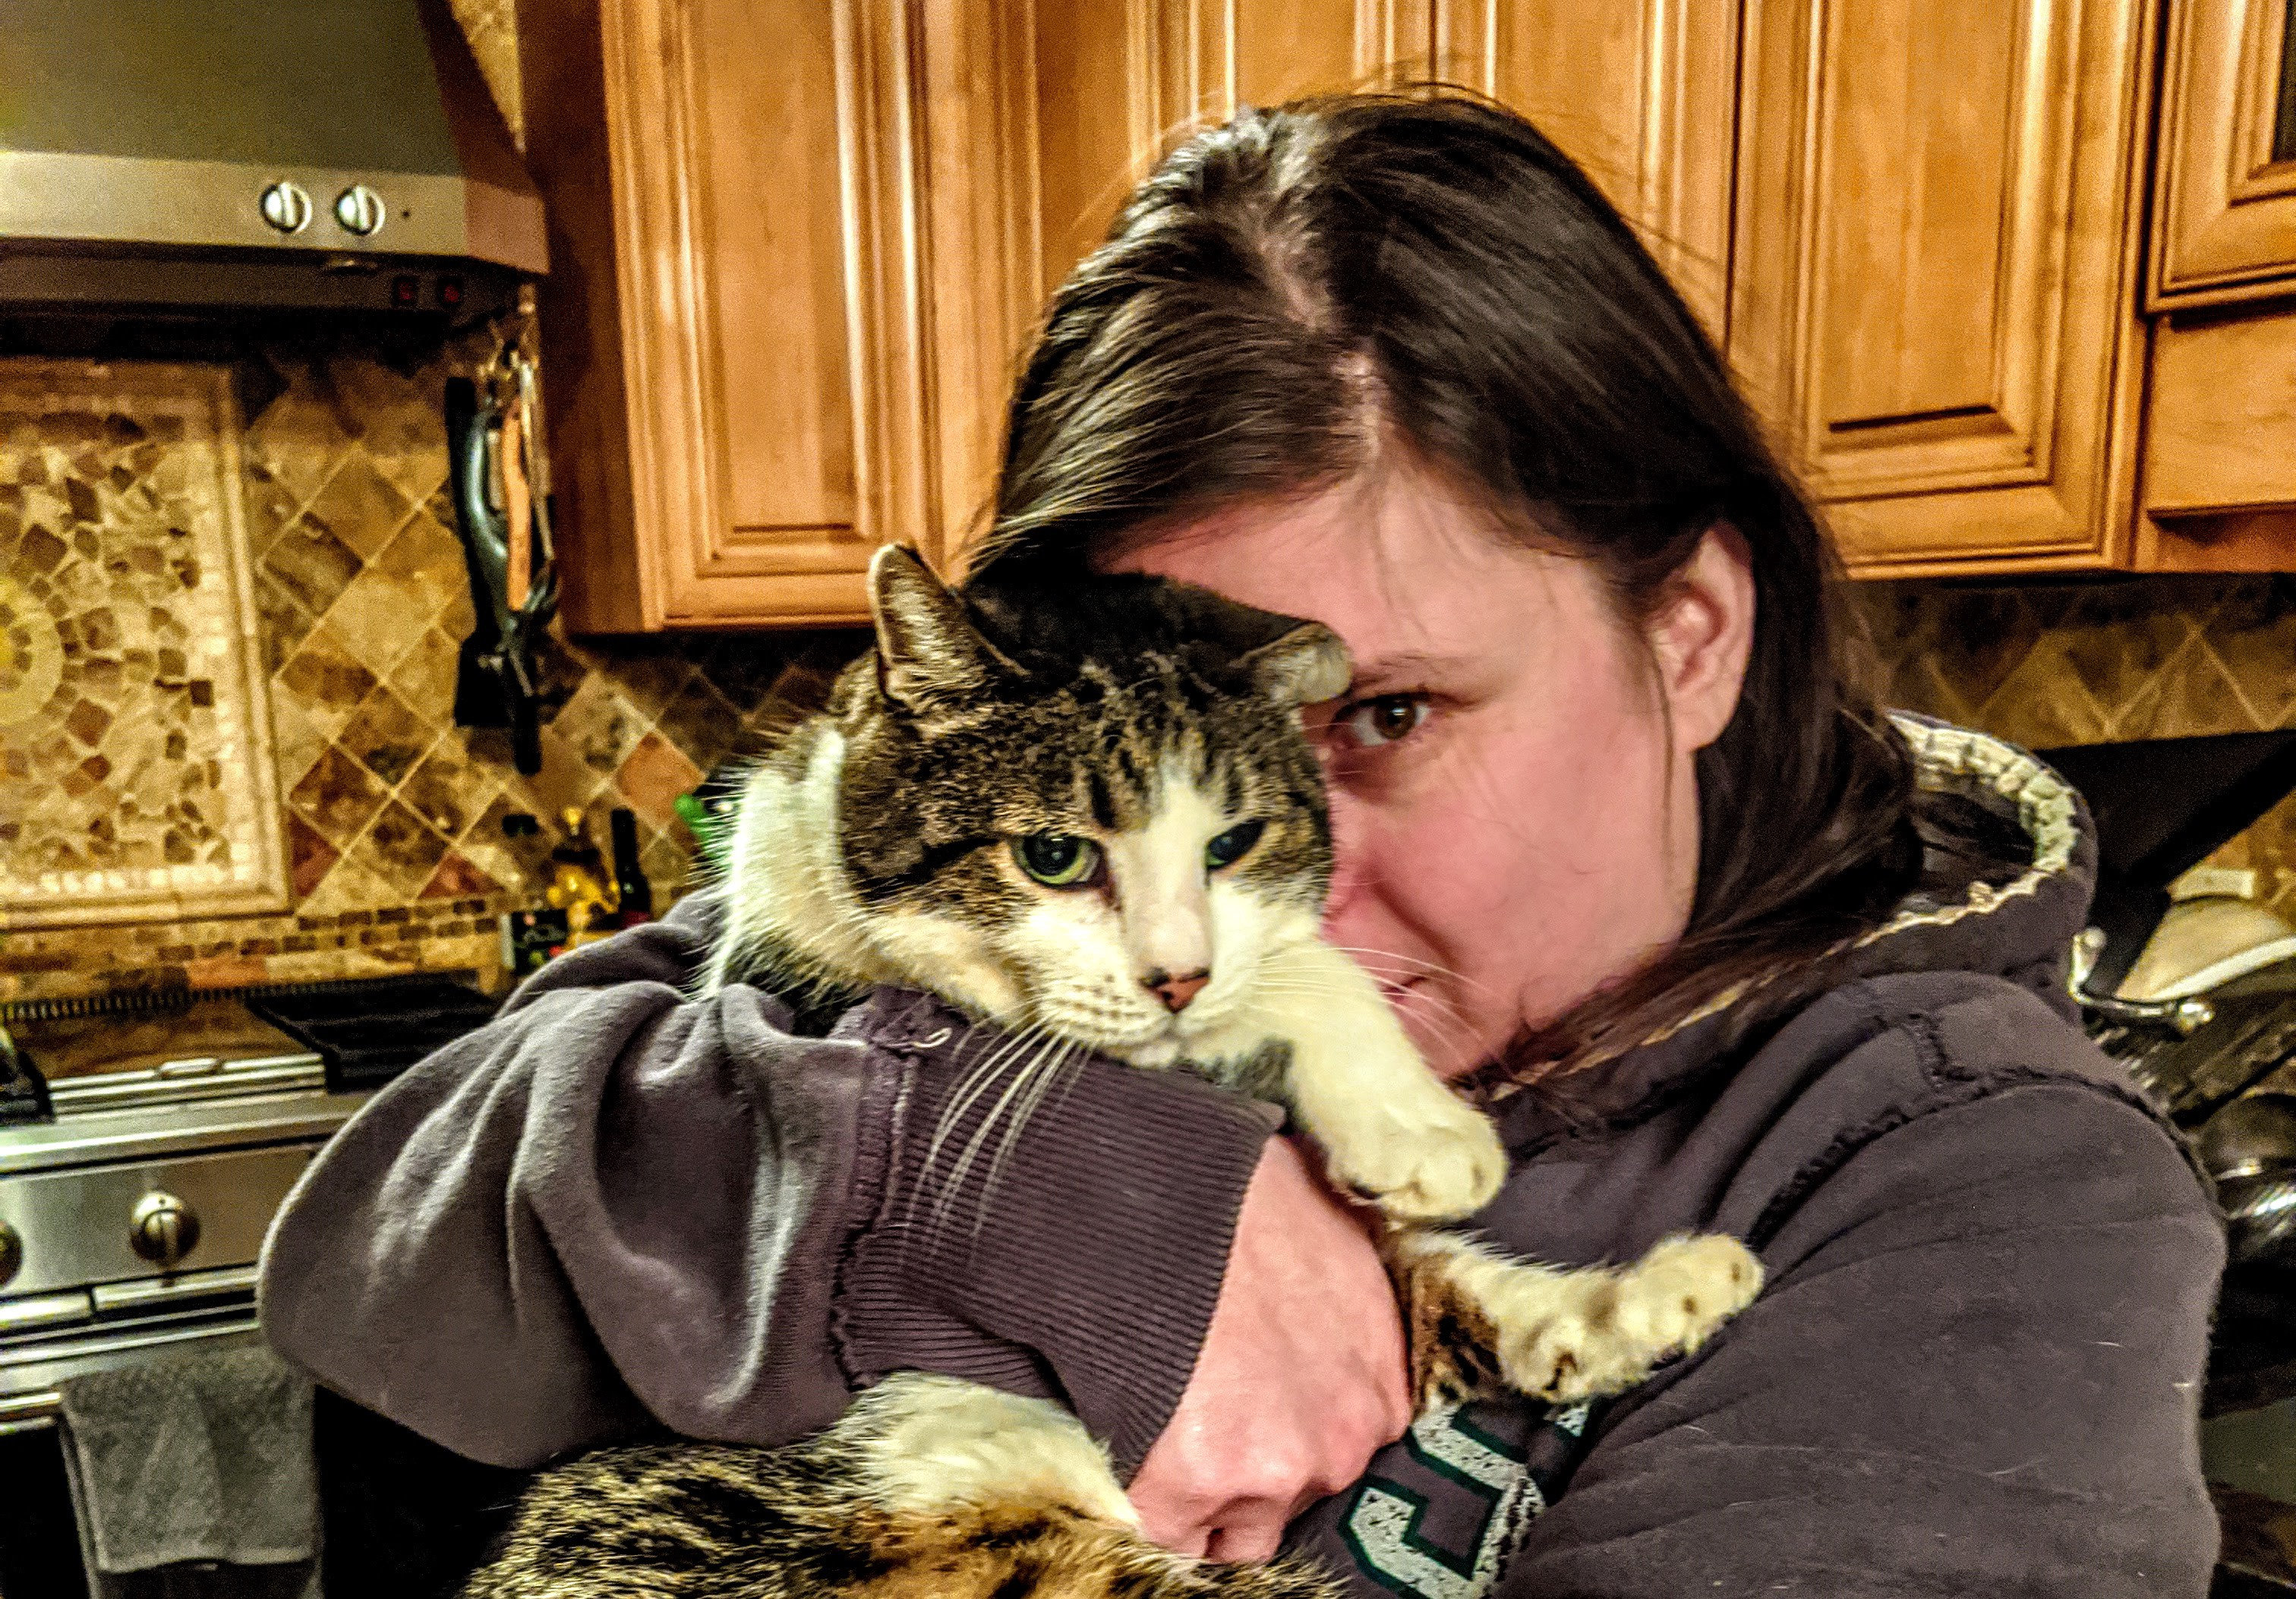 A lovely lady holding a handsome cat